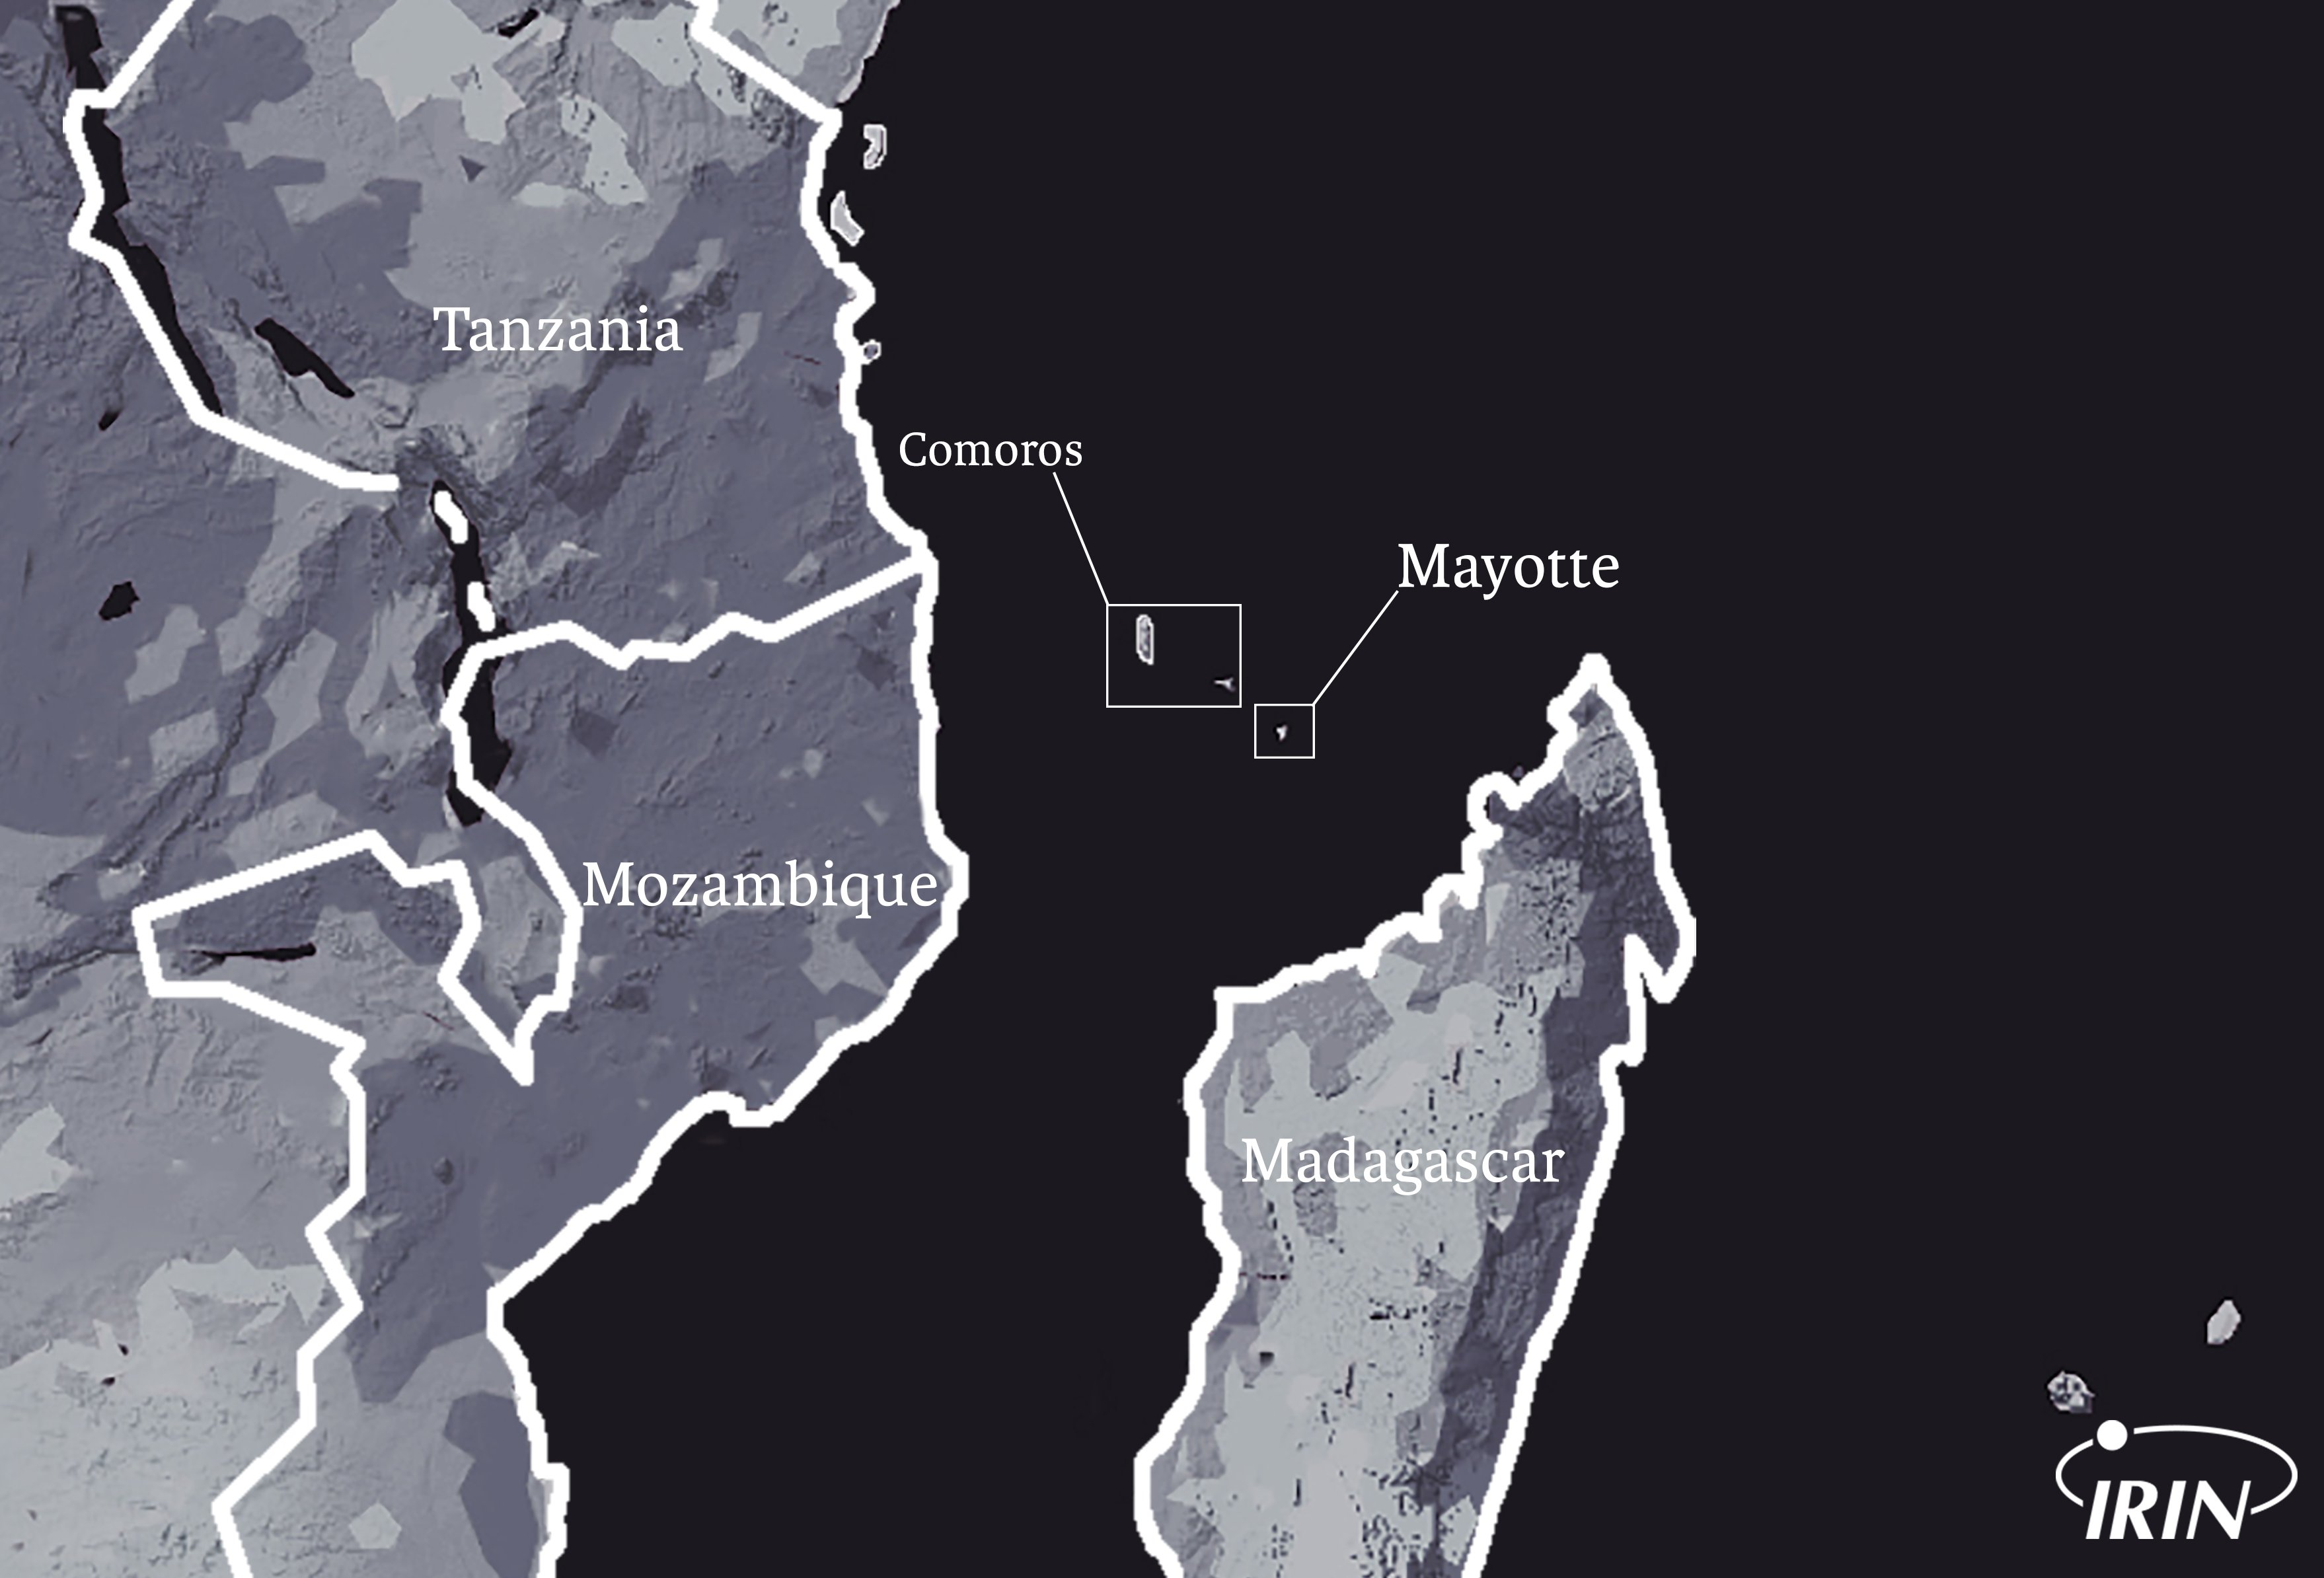 Map detailing location of Comoros, Mayotte, Madagascar, Mozambique, and Tanzania